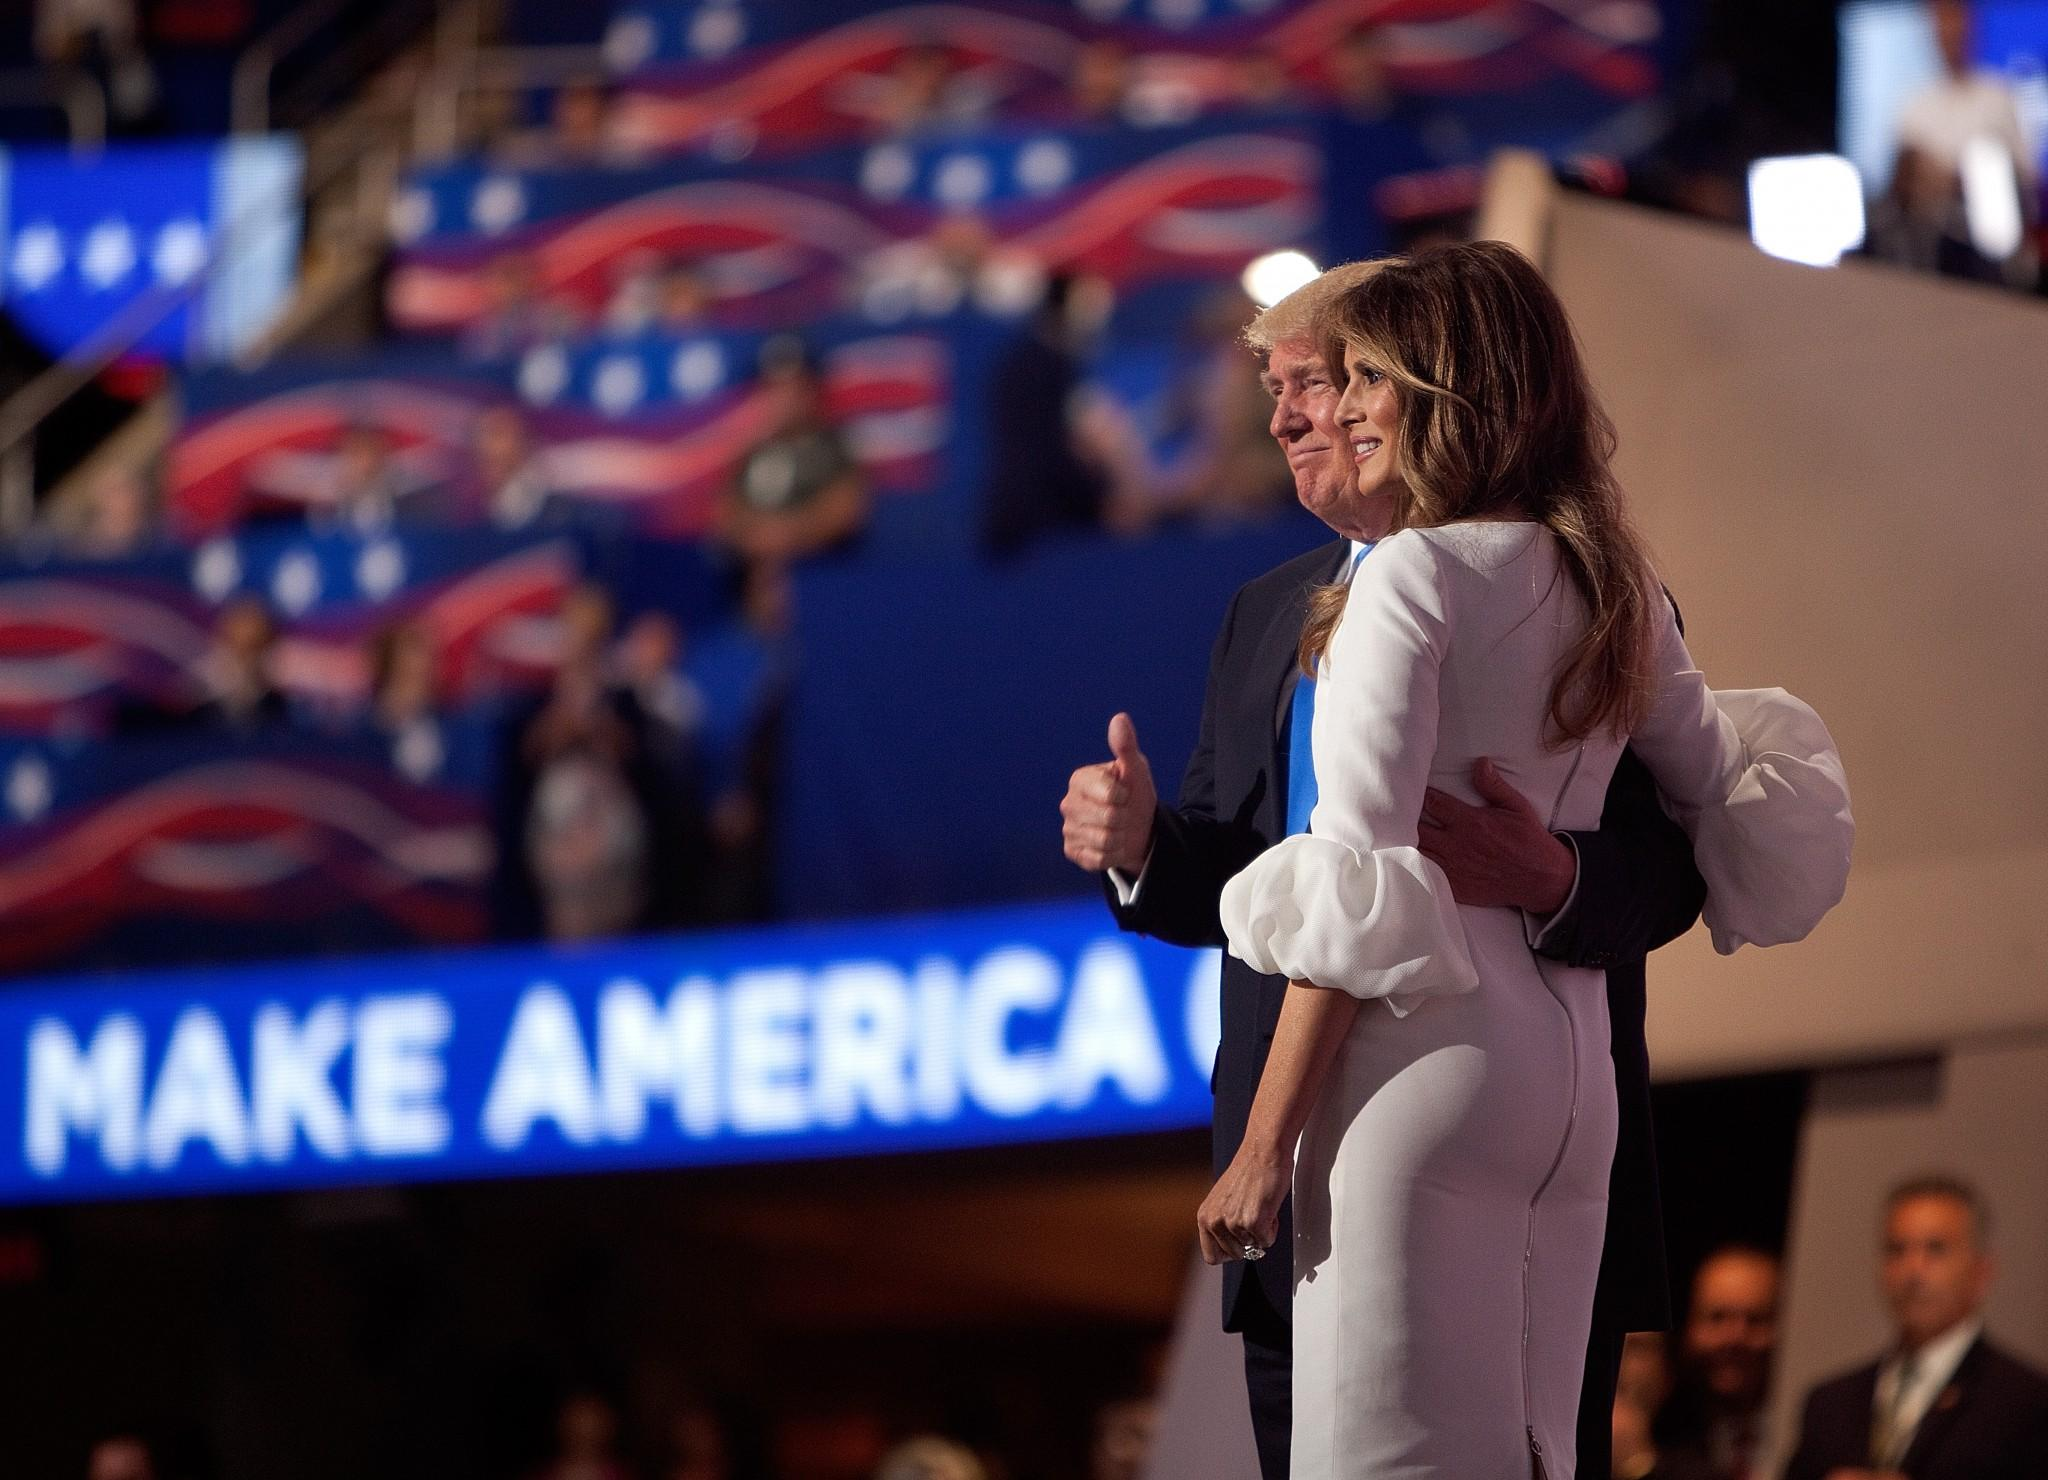 Donald Trump and his wife, Melania, enjoy the applause after her speech at the Republican National Convention on Monday, July 18, 2016, in Cleveland. (Photo: Khue Bui/Yahoo News)